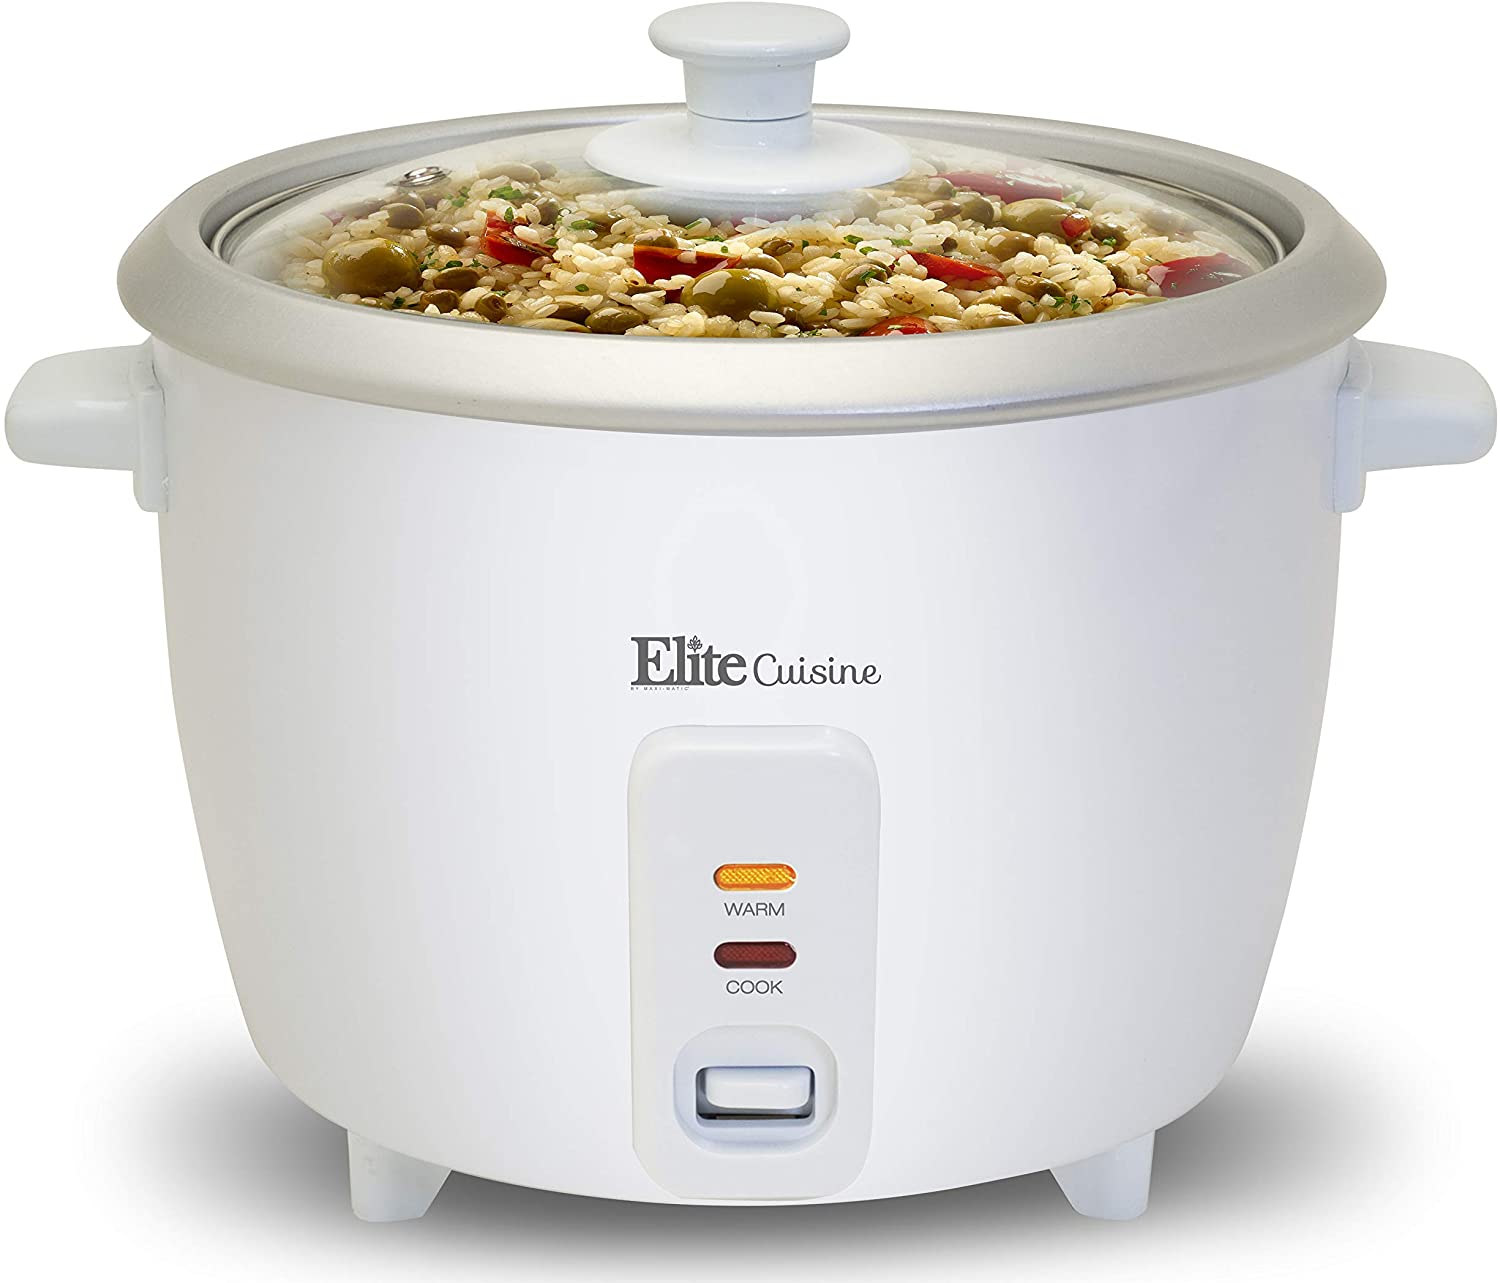 Maxi-Matic Electric Rice Cooker with Automatic Keep Warm Makes Soups, Stews, Grains, Cereals, 3 Cup, White